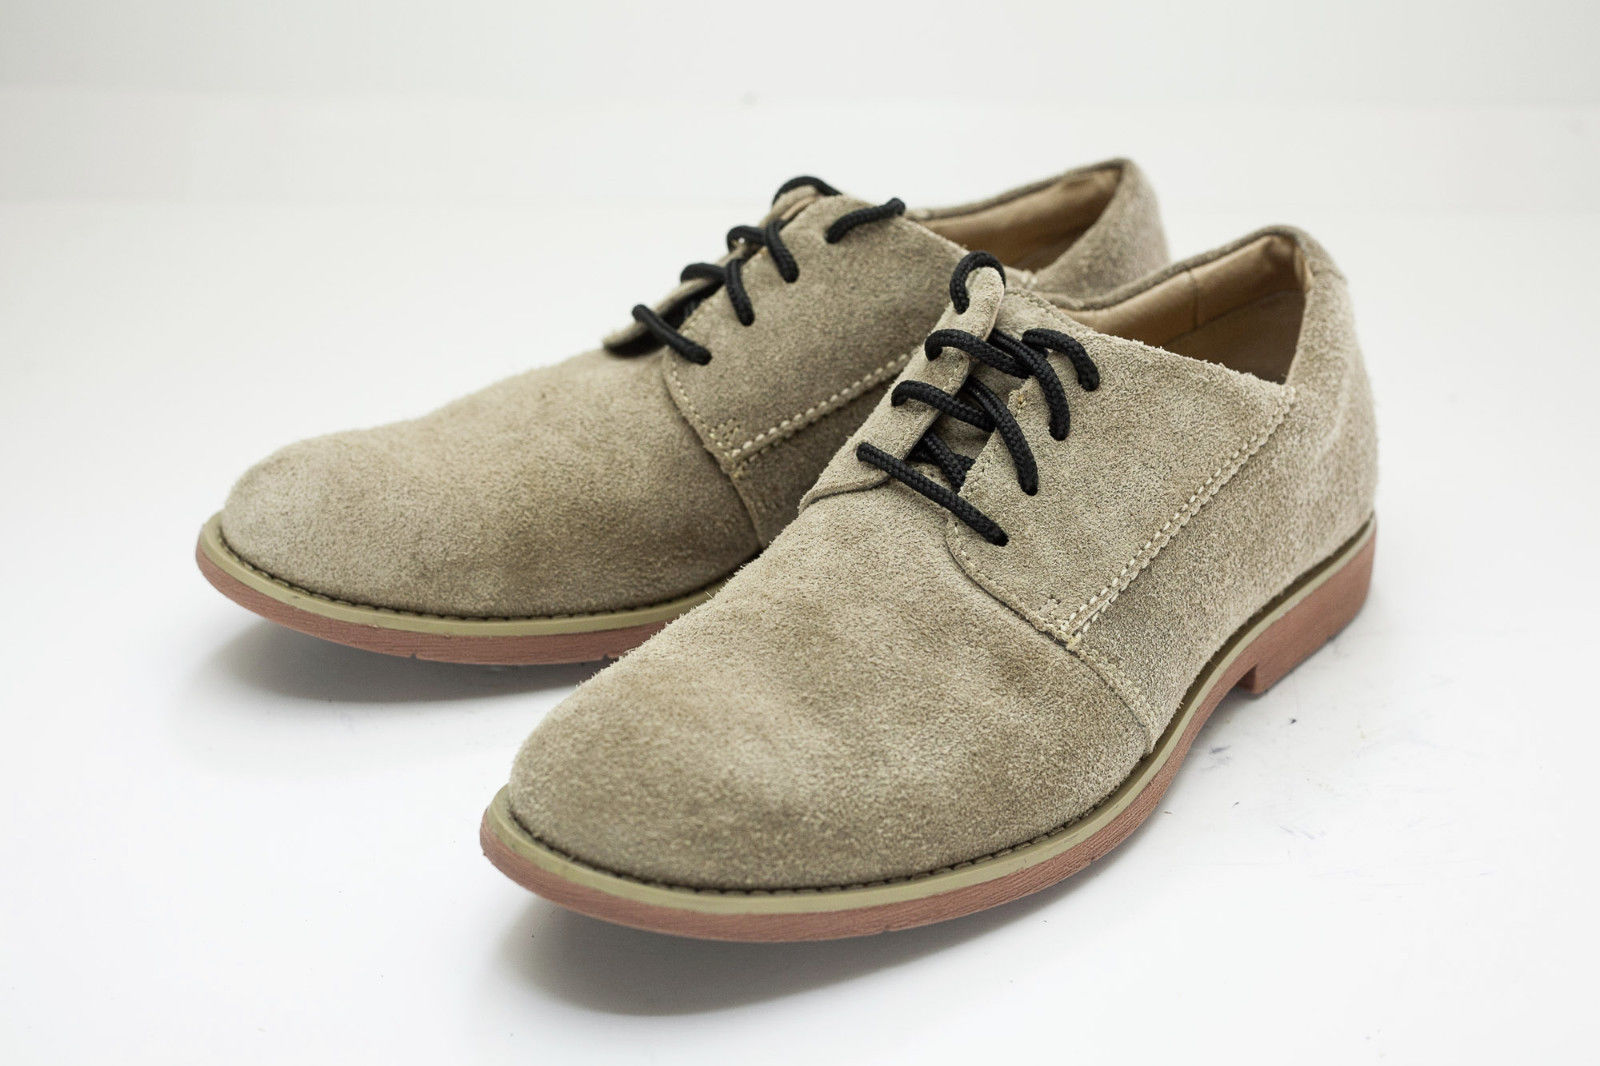 08aeae61540f5 Sperry Top-Sider 7.5 Tan Oxford Casual and 50 similar items. 57